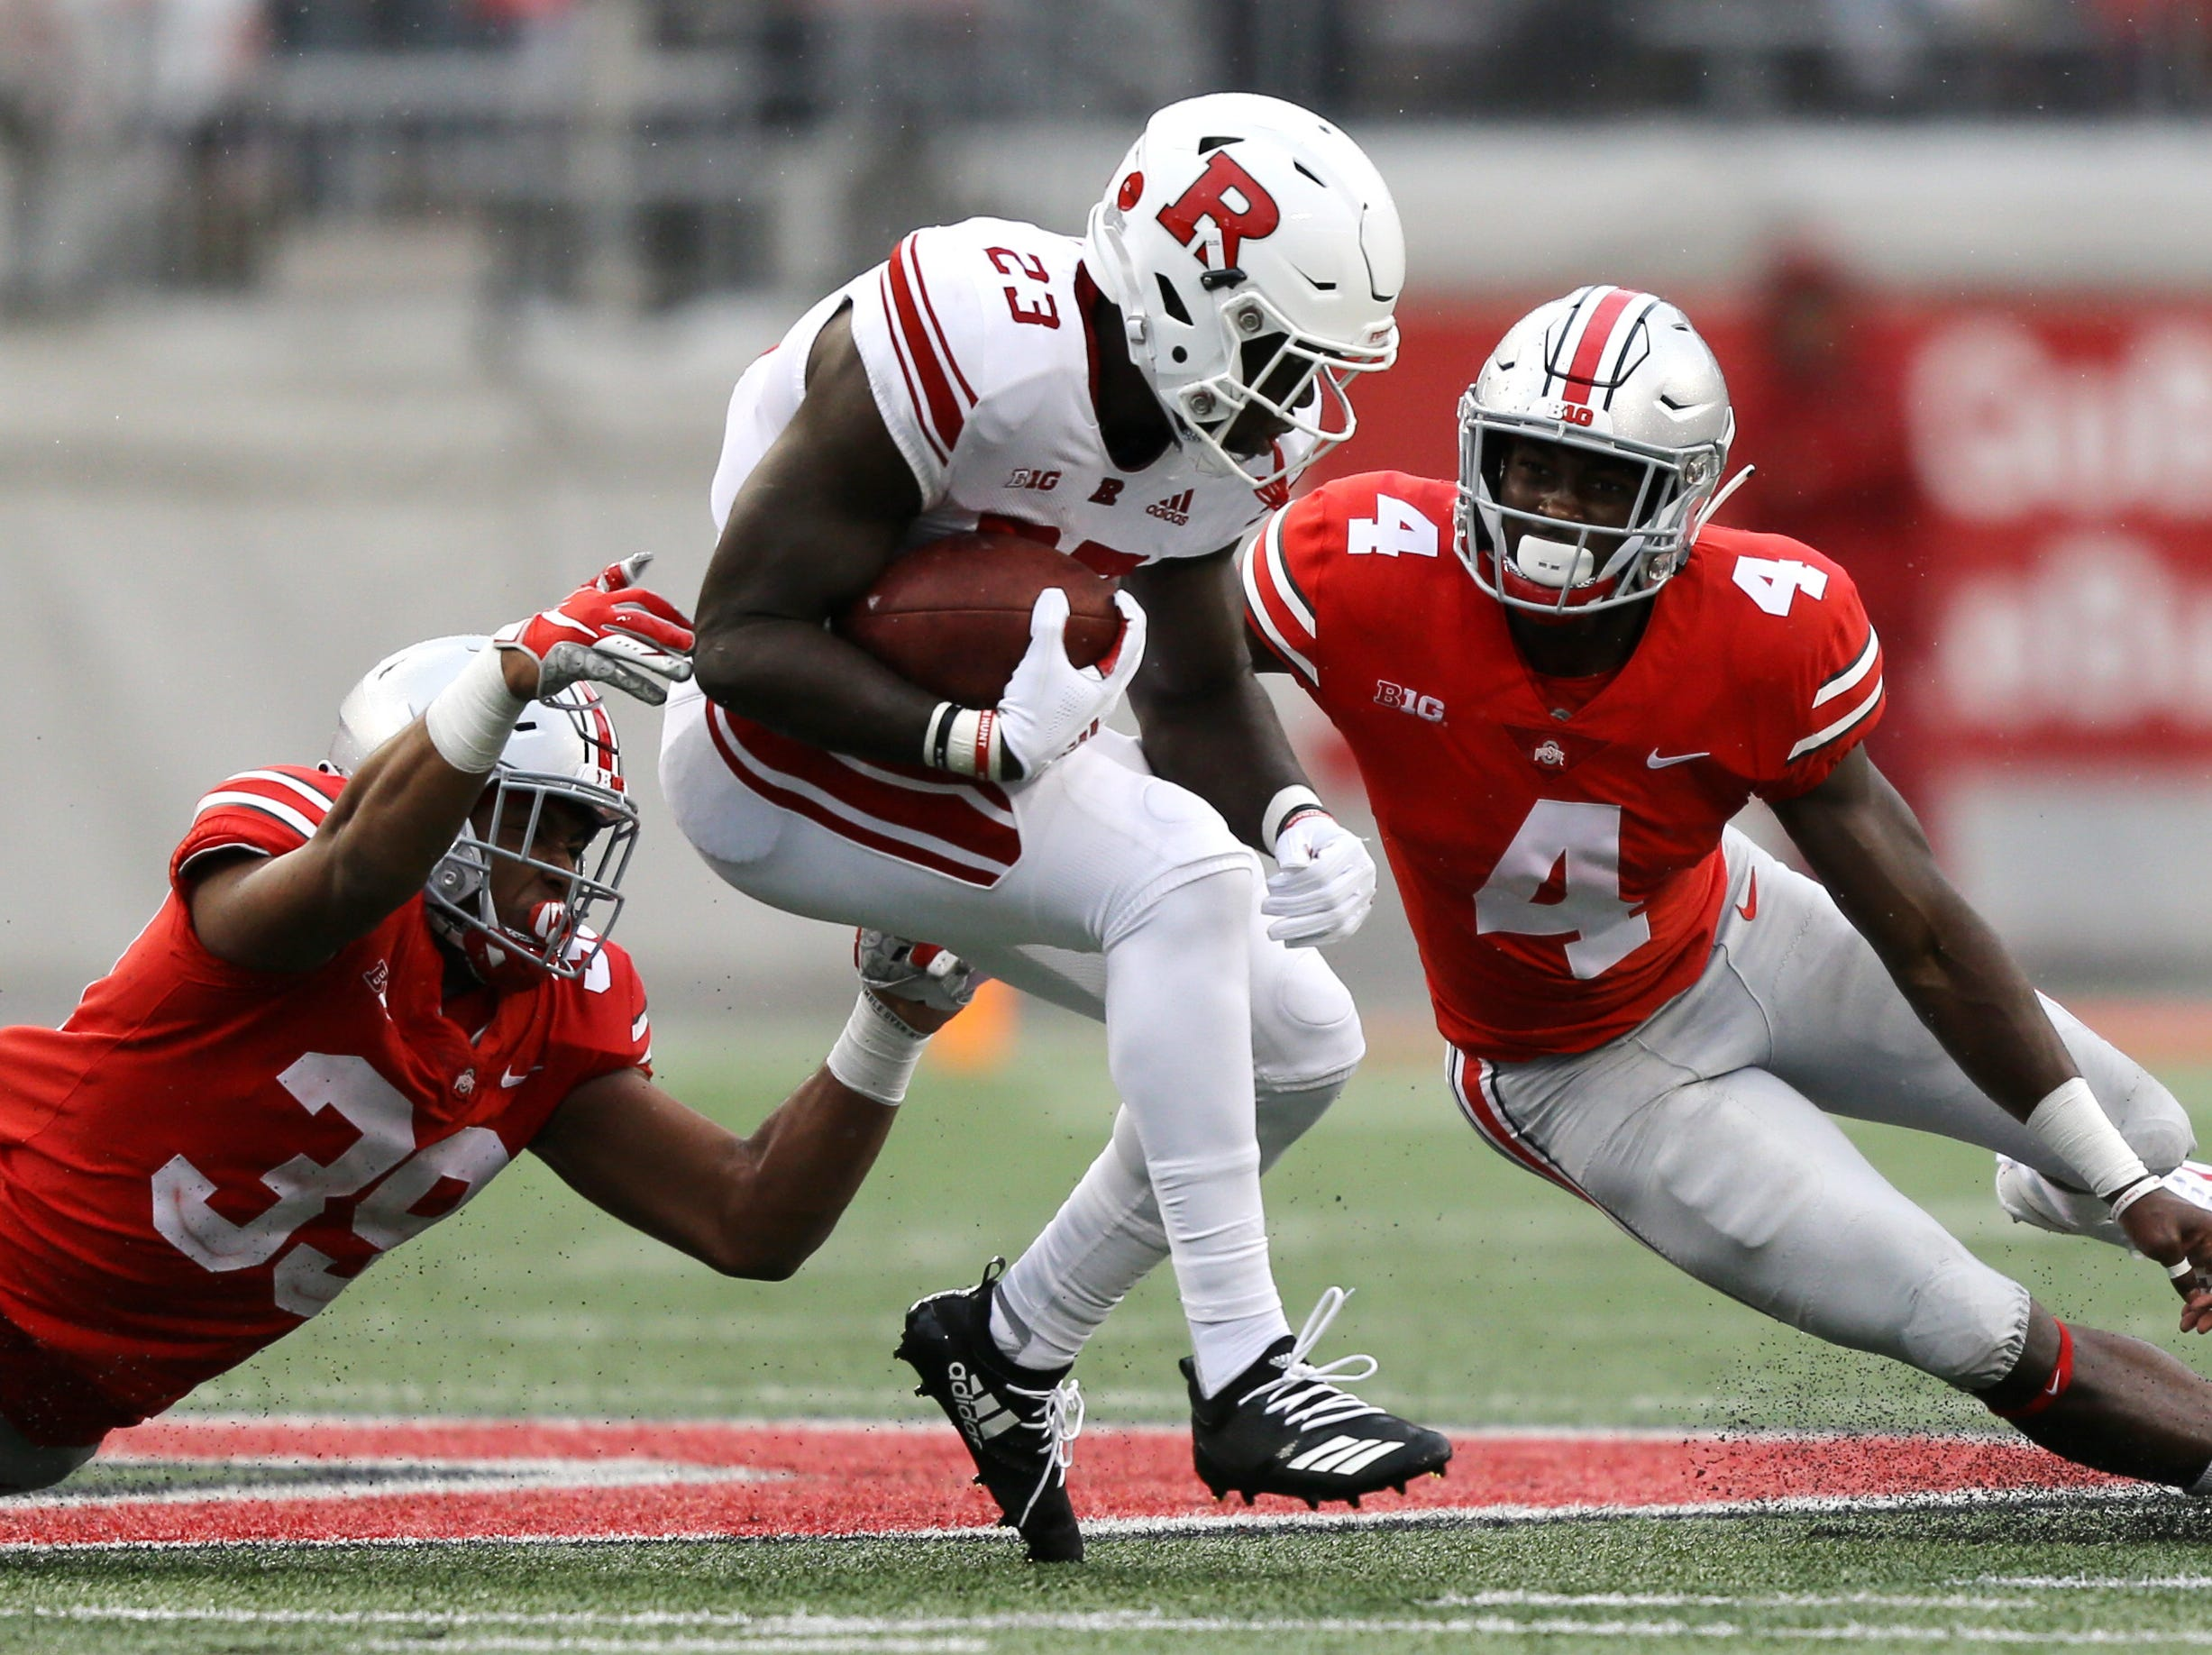 Rutgers Scarlet Knights running back Jonathan Hilliman (23) carries the ball against Ohio State Buckeyes linebacker Malik Harrison (39) and safety Jordan Fuller (4) in the second half at Ohio Stadium.